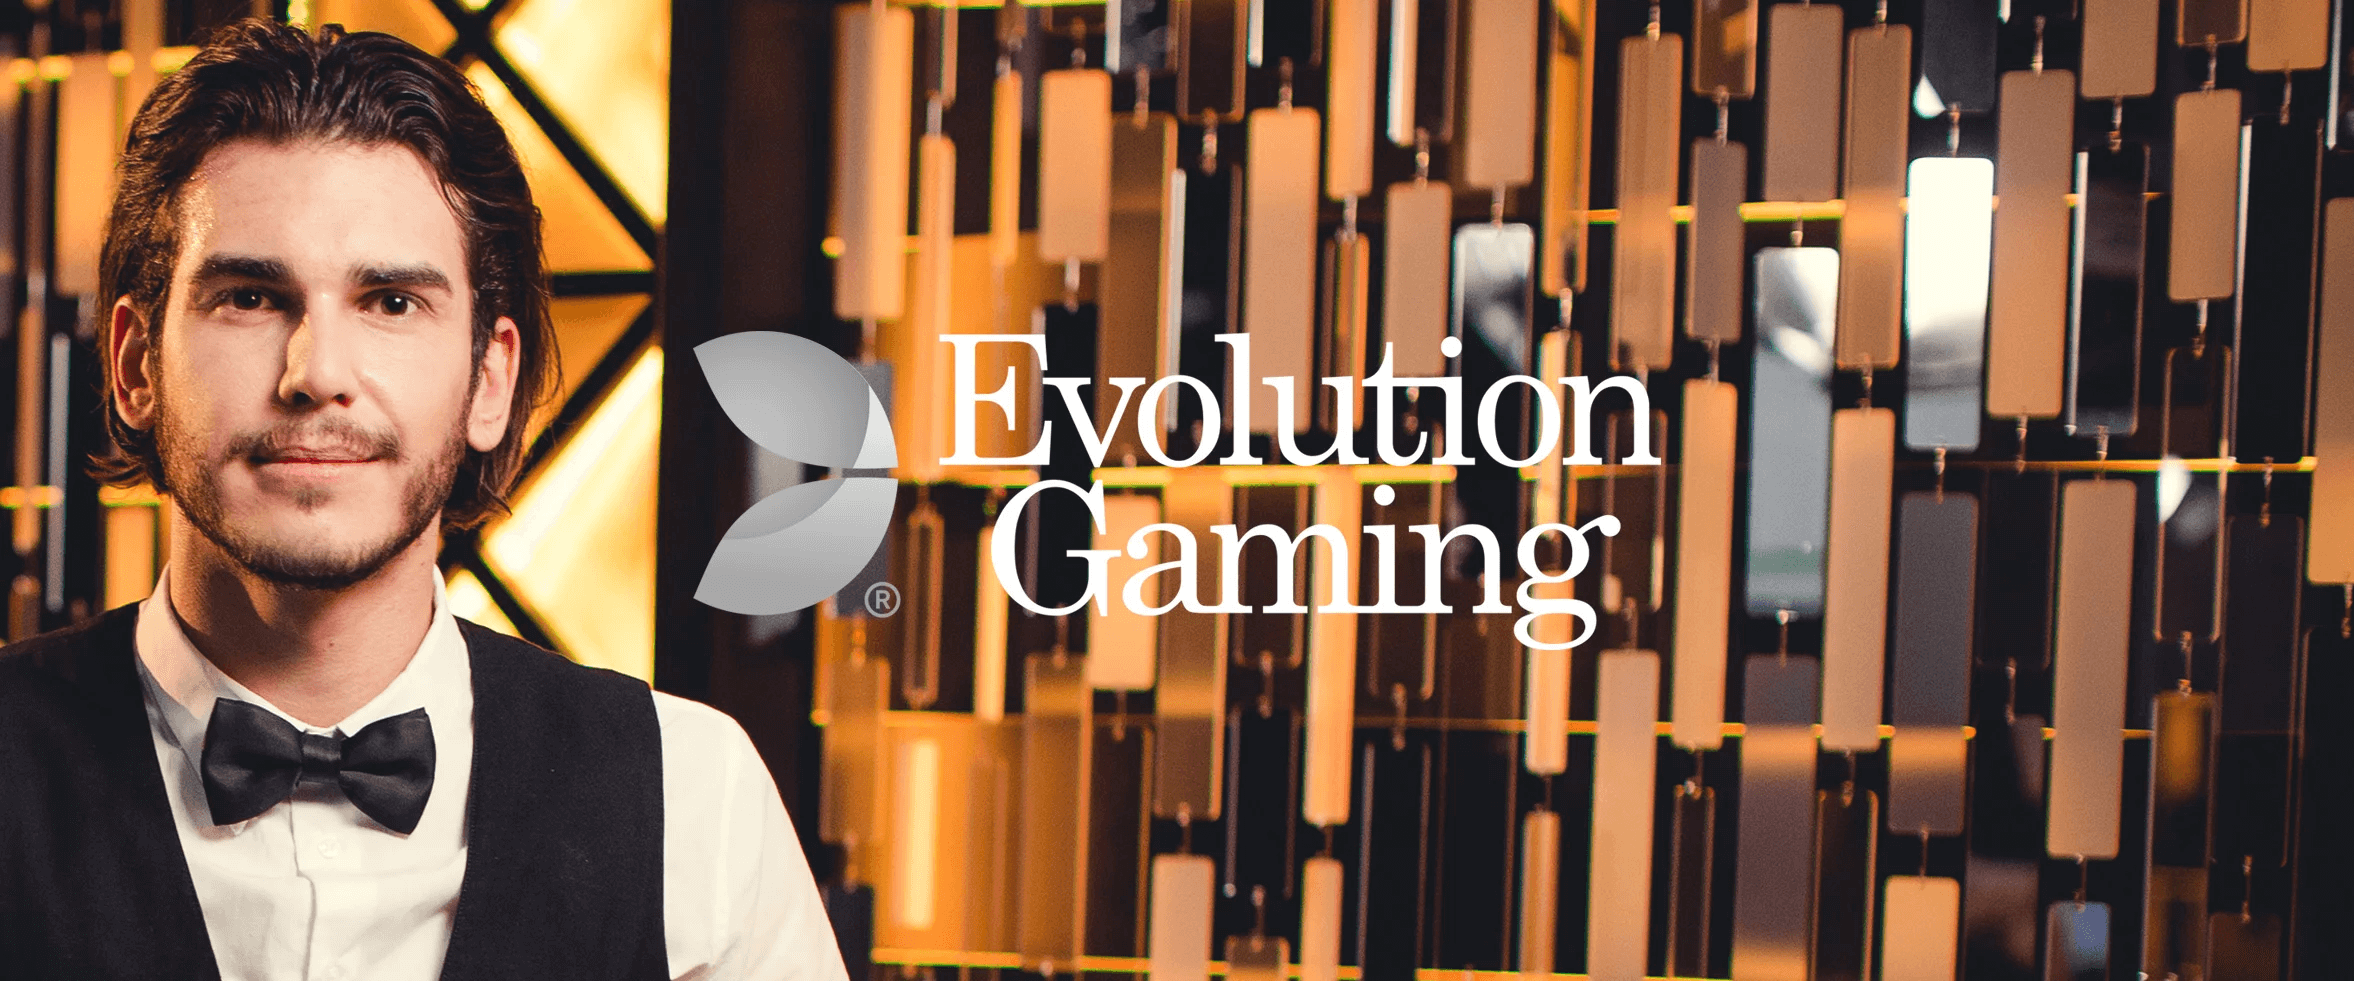 Evolution Gaming CS